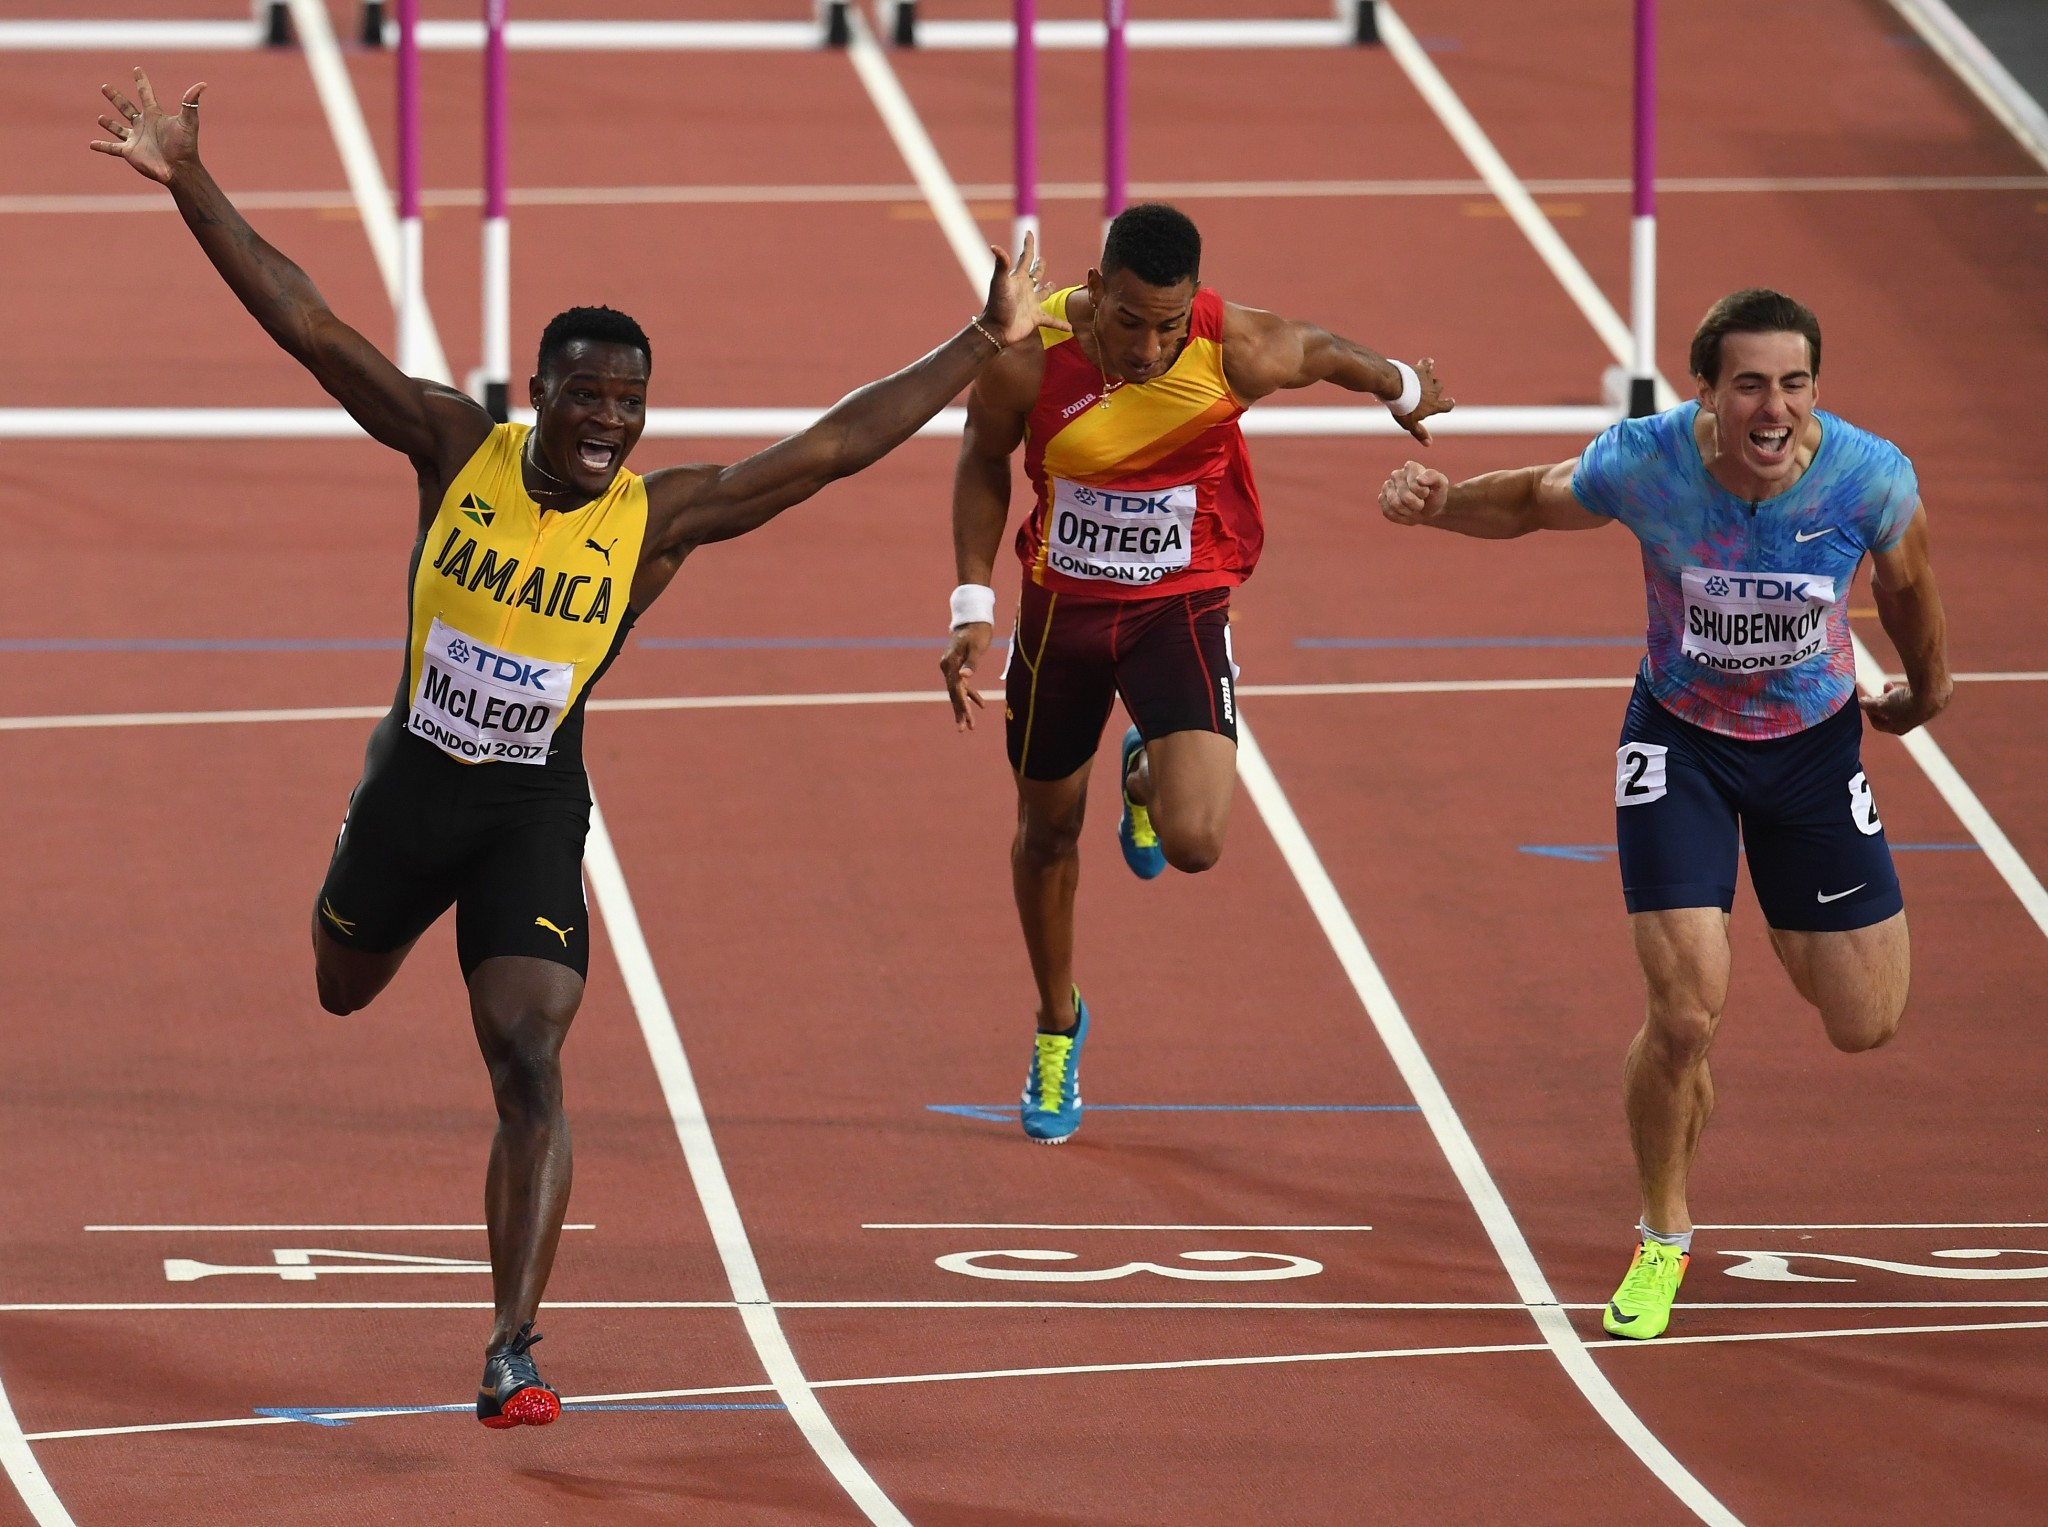 Athletics-Slick Britain win shock 4x100 relay gold as Bolt pulls up